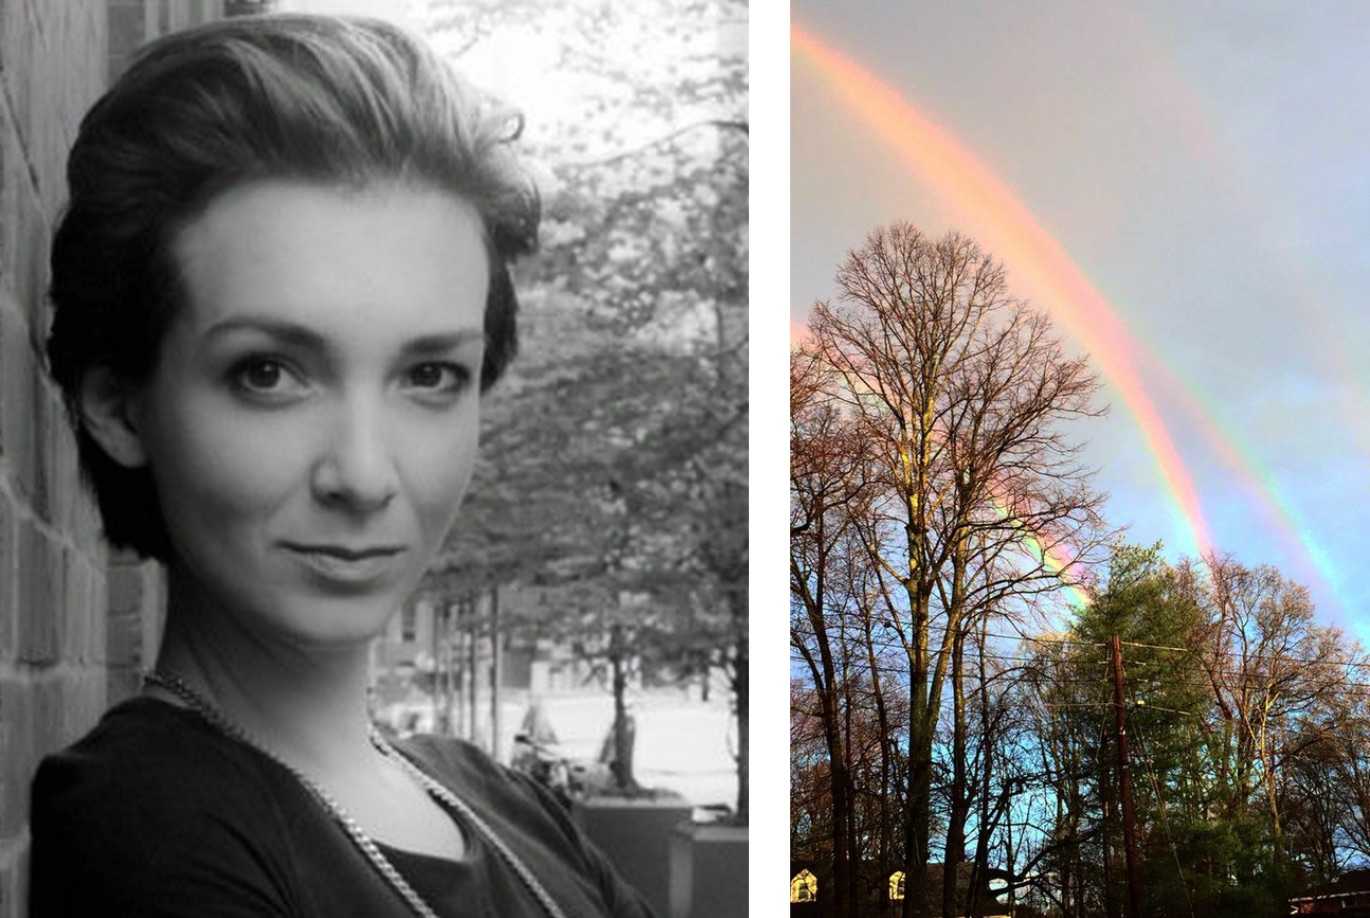 Meet the 27-year-old fashion CEO who took the quadruple rainbow photo